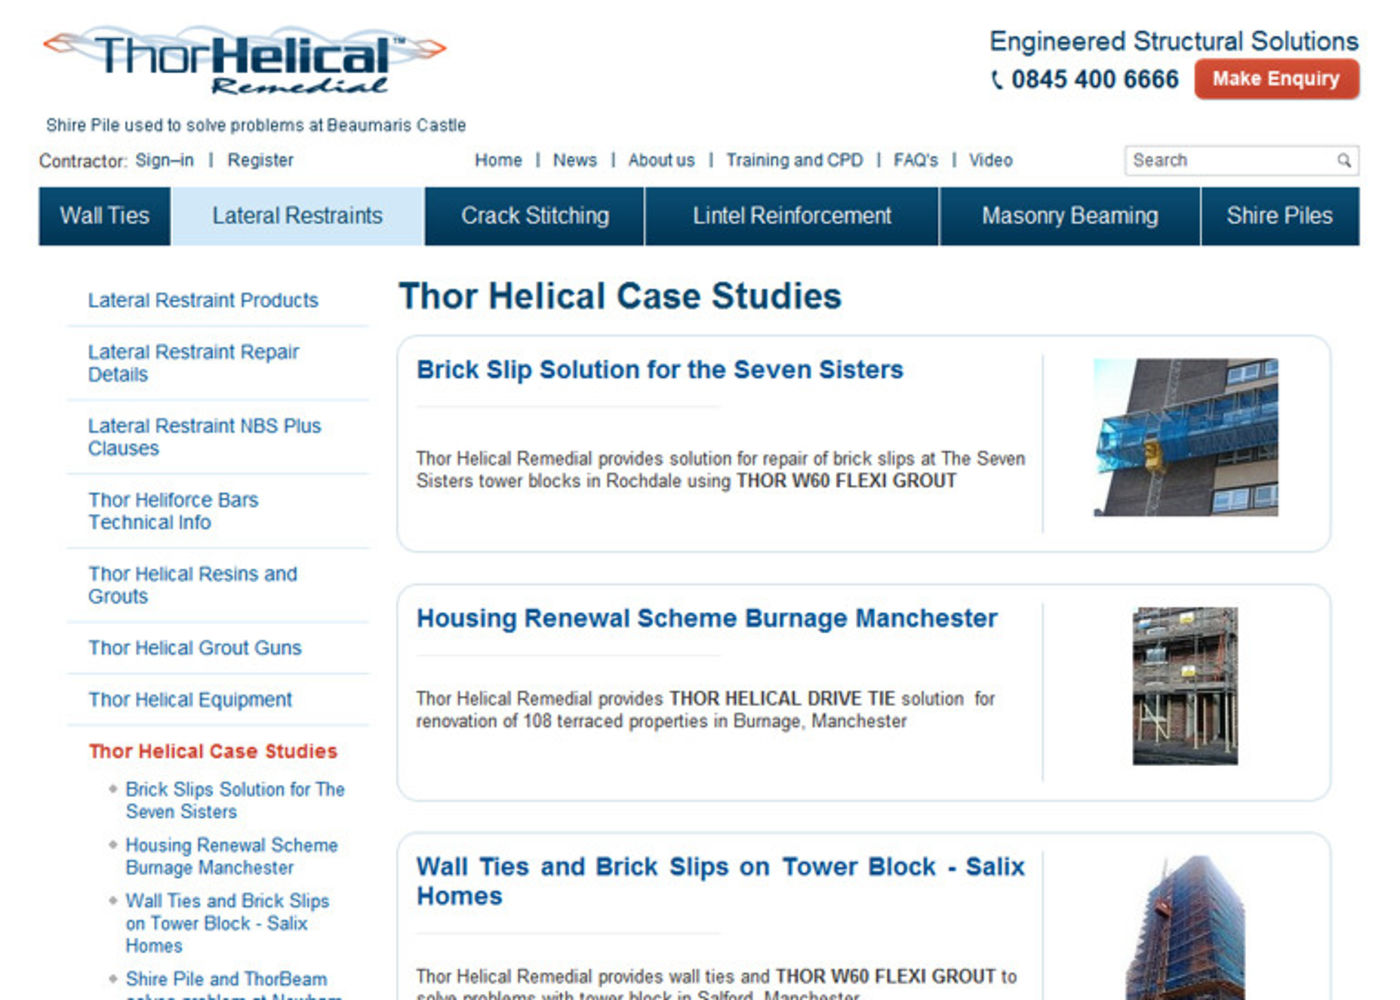 Thor Helical Remedial Case Studies